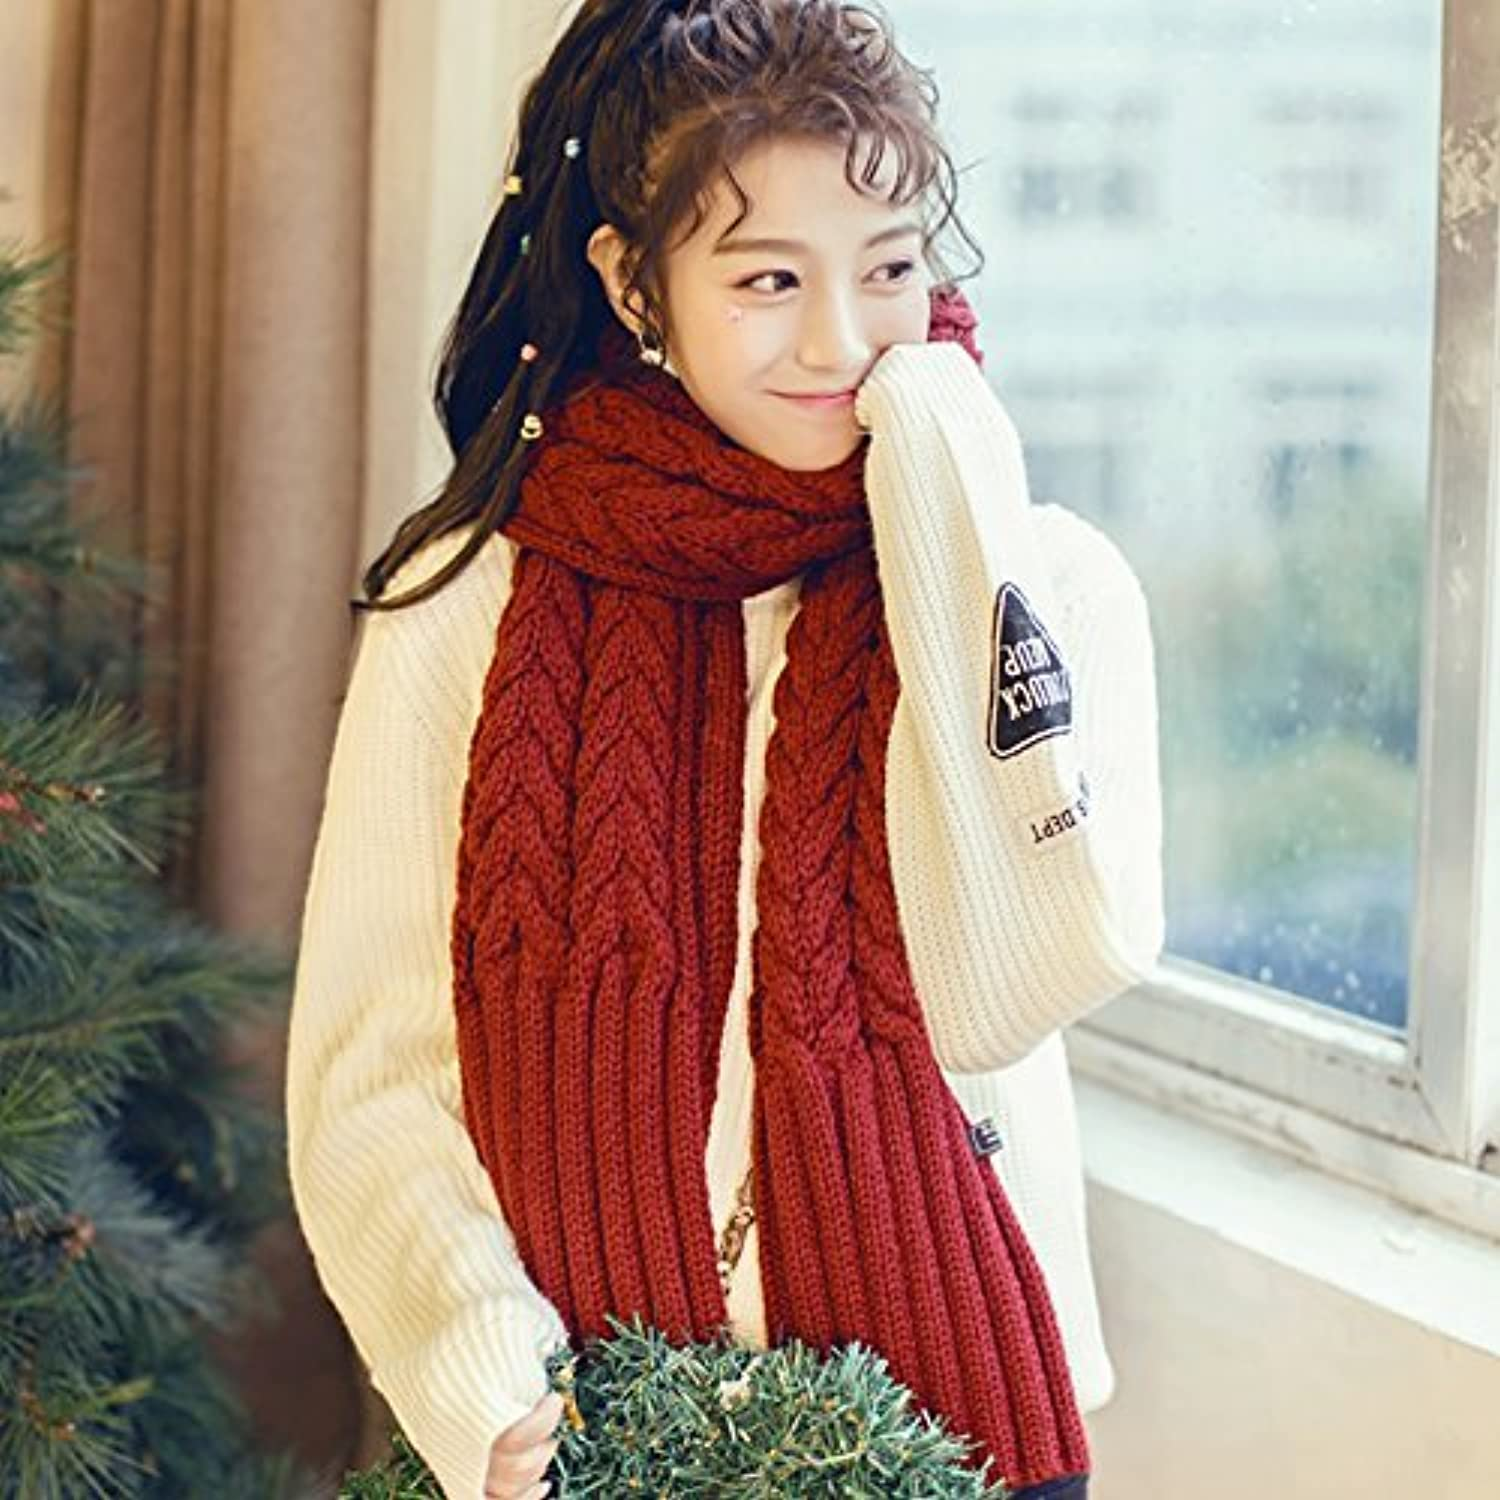 SED ScarfOur Winter Scarf Knitted Shawls Long Thick Couple of Students Imitation Cashmere Scarf Female Autumn and Winter Korean Students Knitted Shawl Long